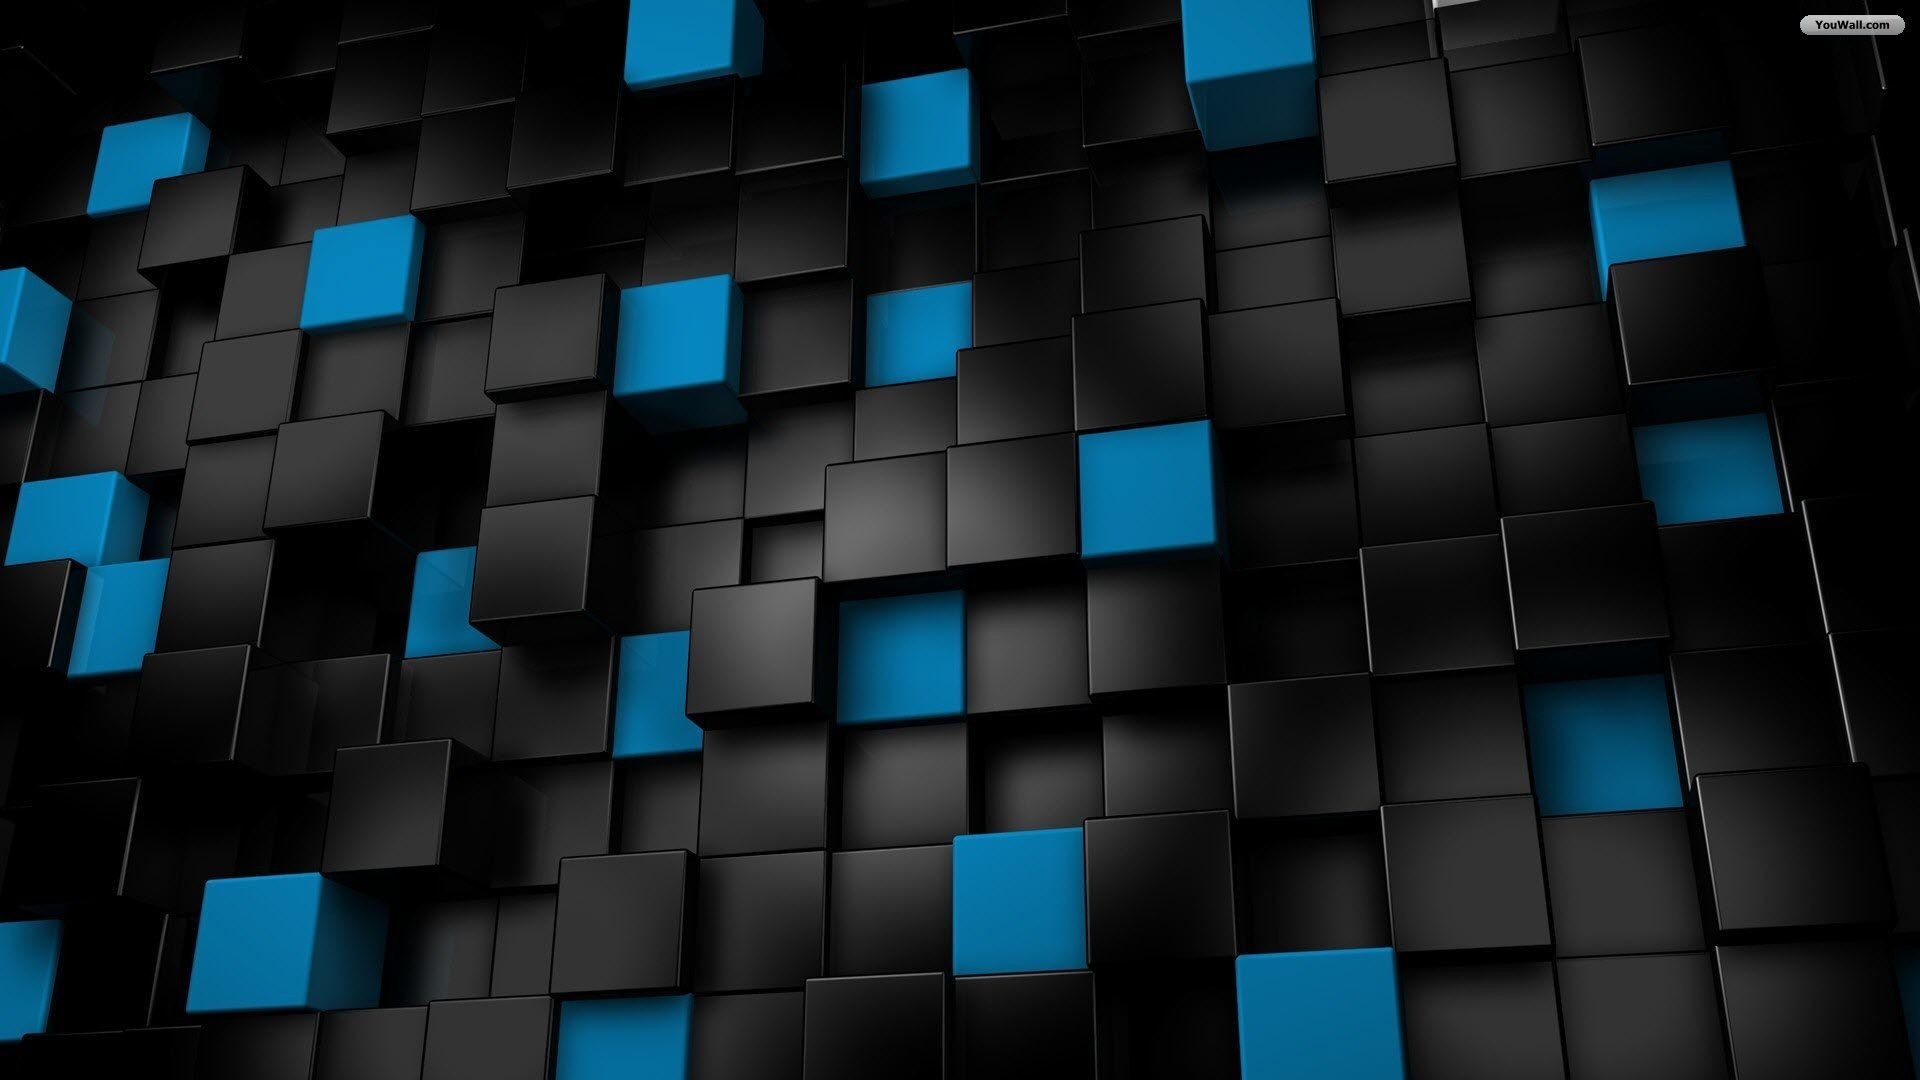 1920x1080 Black And Blue Wallpaper Square Small Elegant Manufacturing Creative  Desktop Background